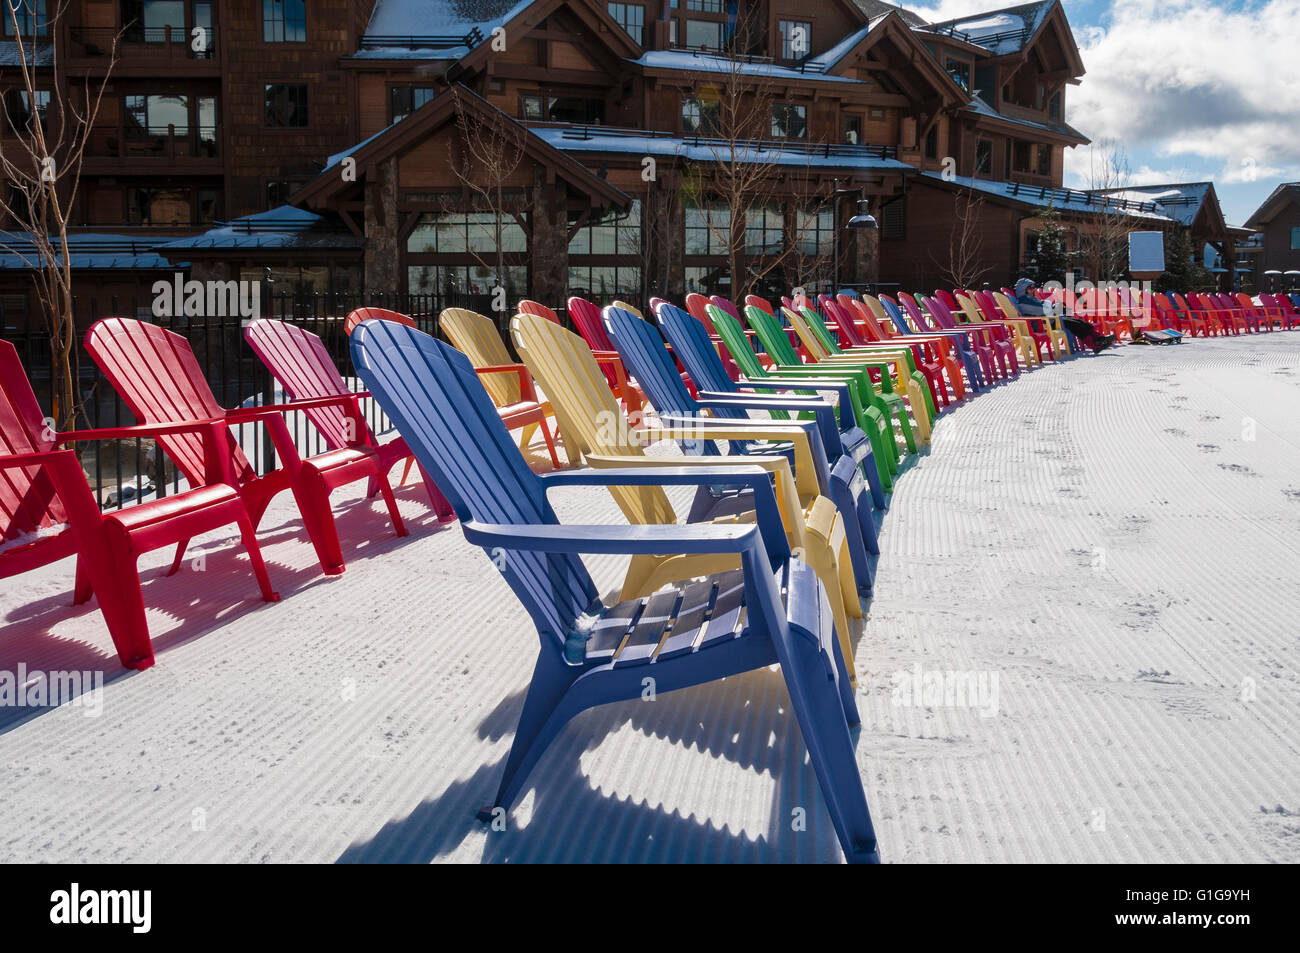 Adirondack chairs in front of Grand Lodge on Peak 7, Breckenridge Ski Resort, Breckenridge, Colorado. - Stock Image